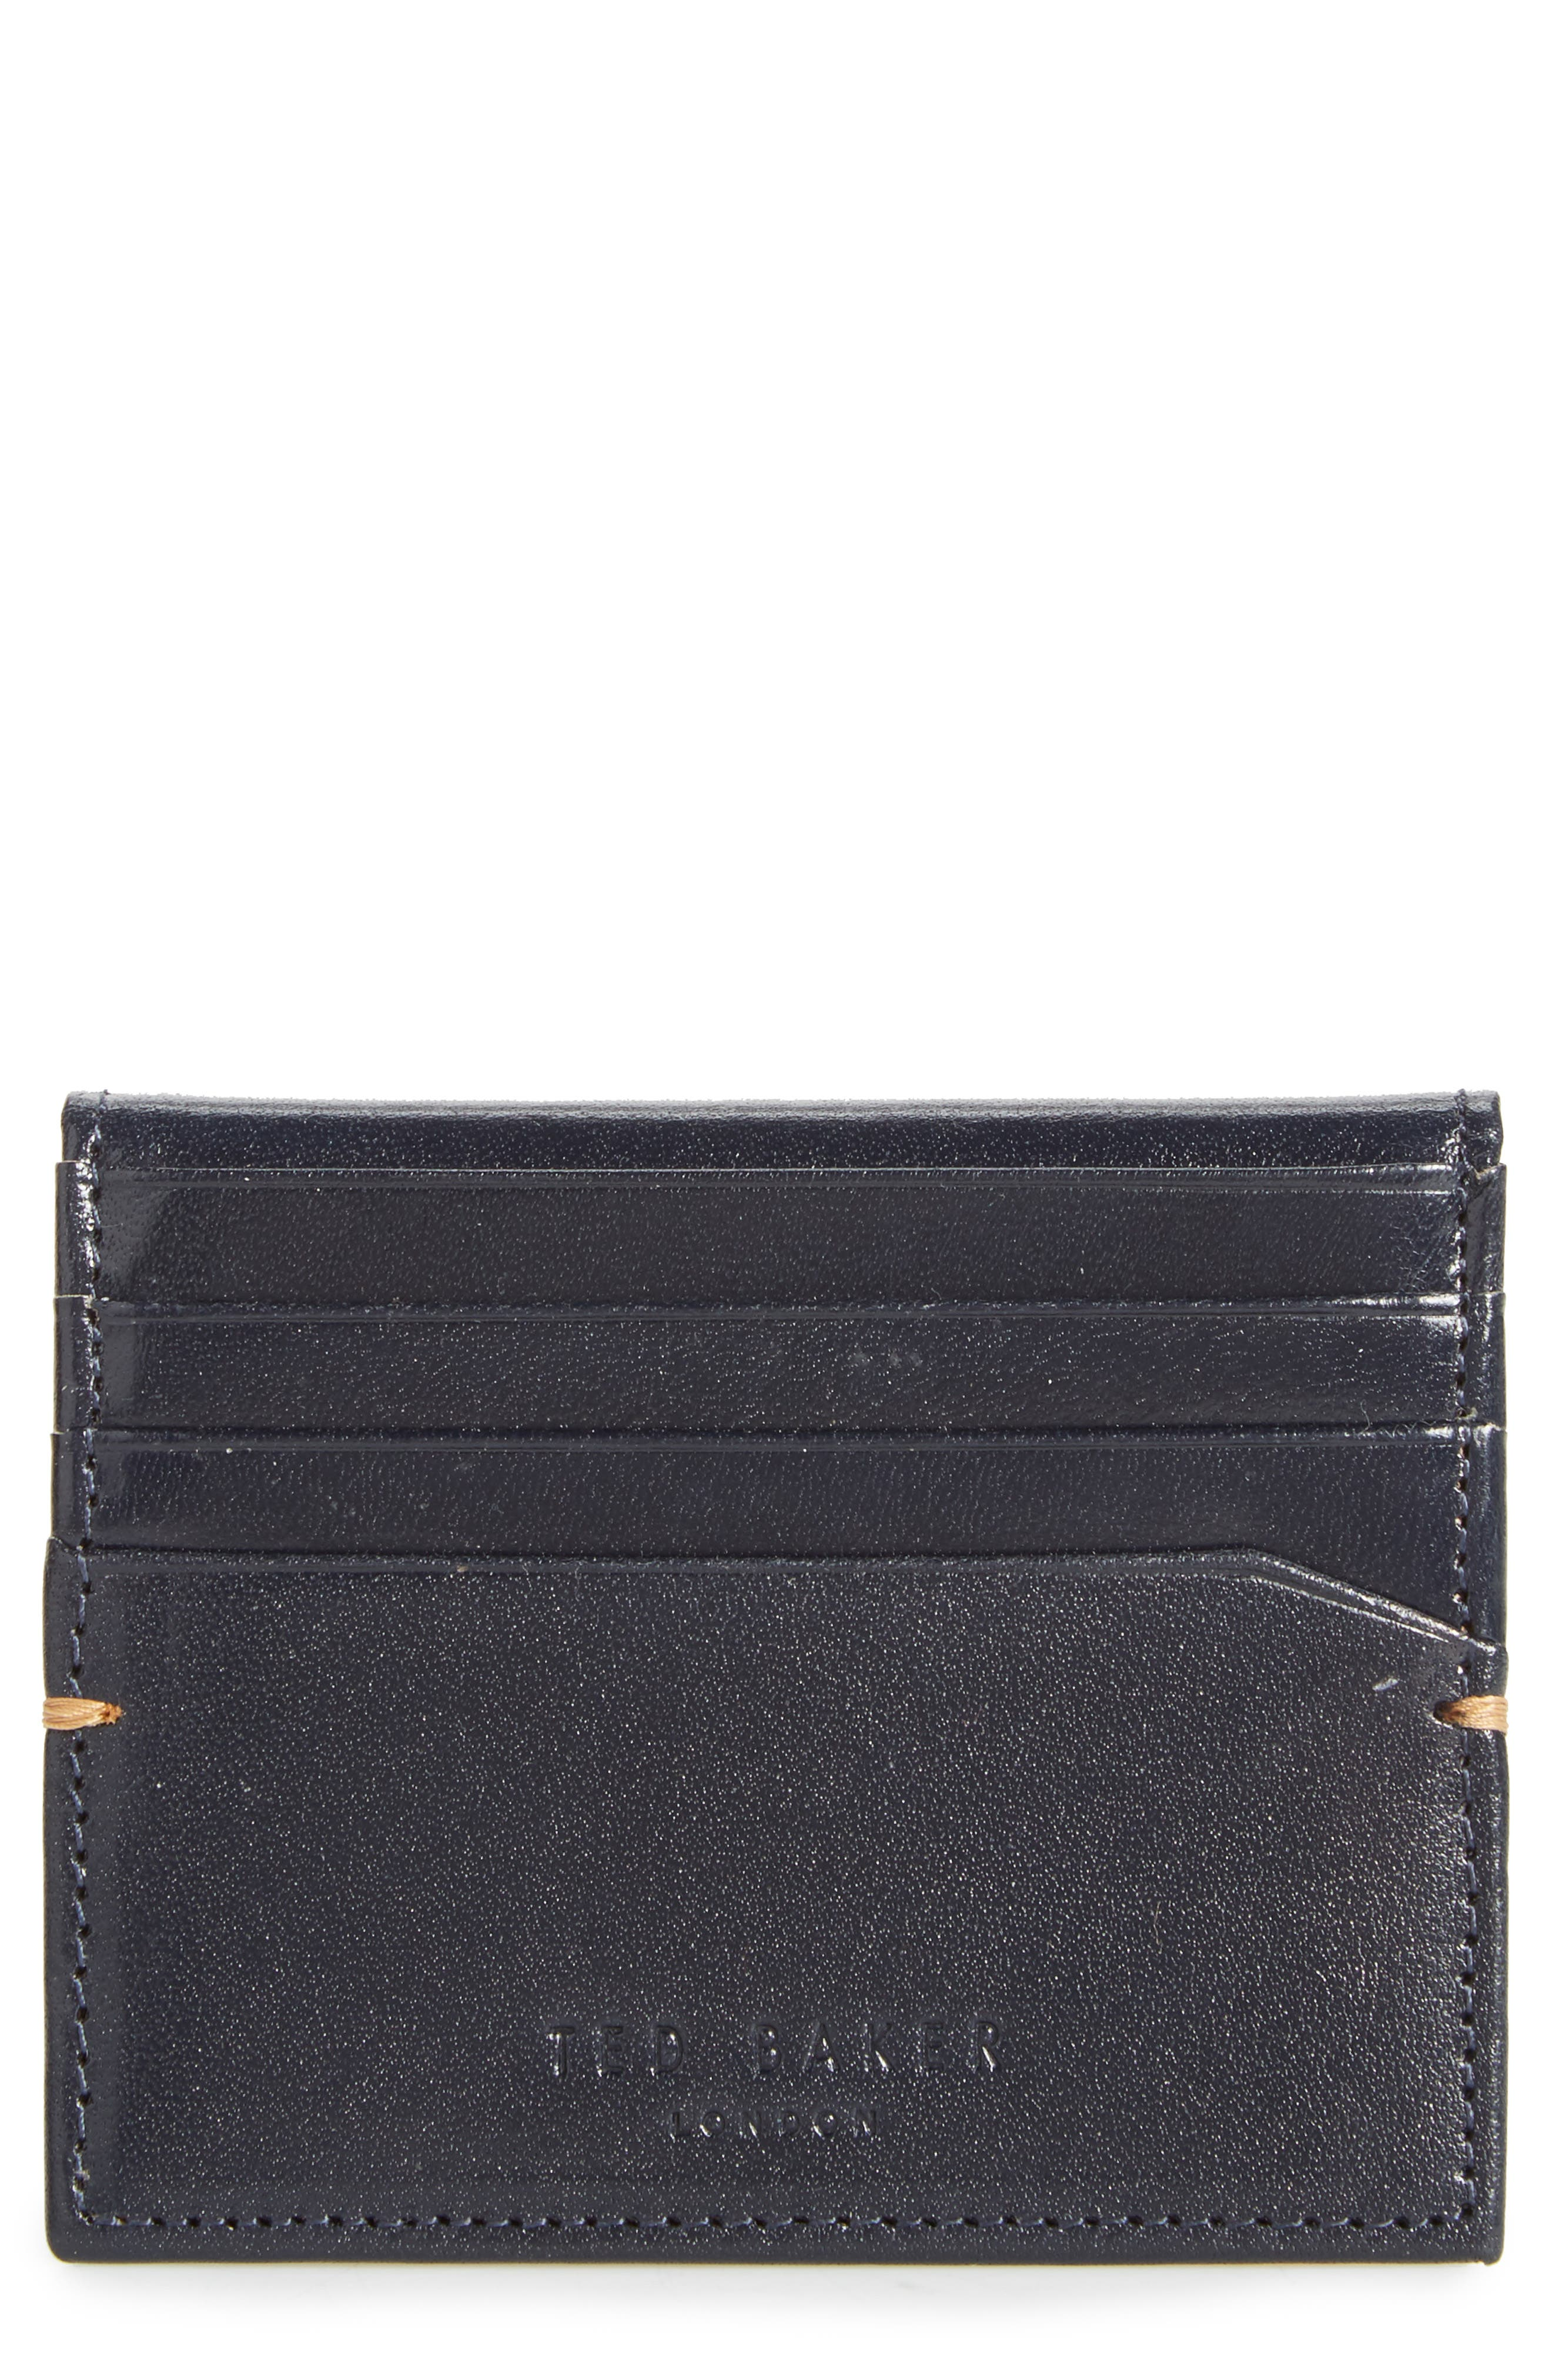 Main Image - Ted Baker London Brights Leather Card Case